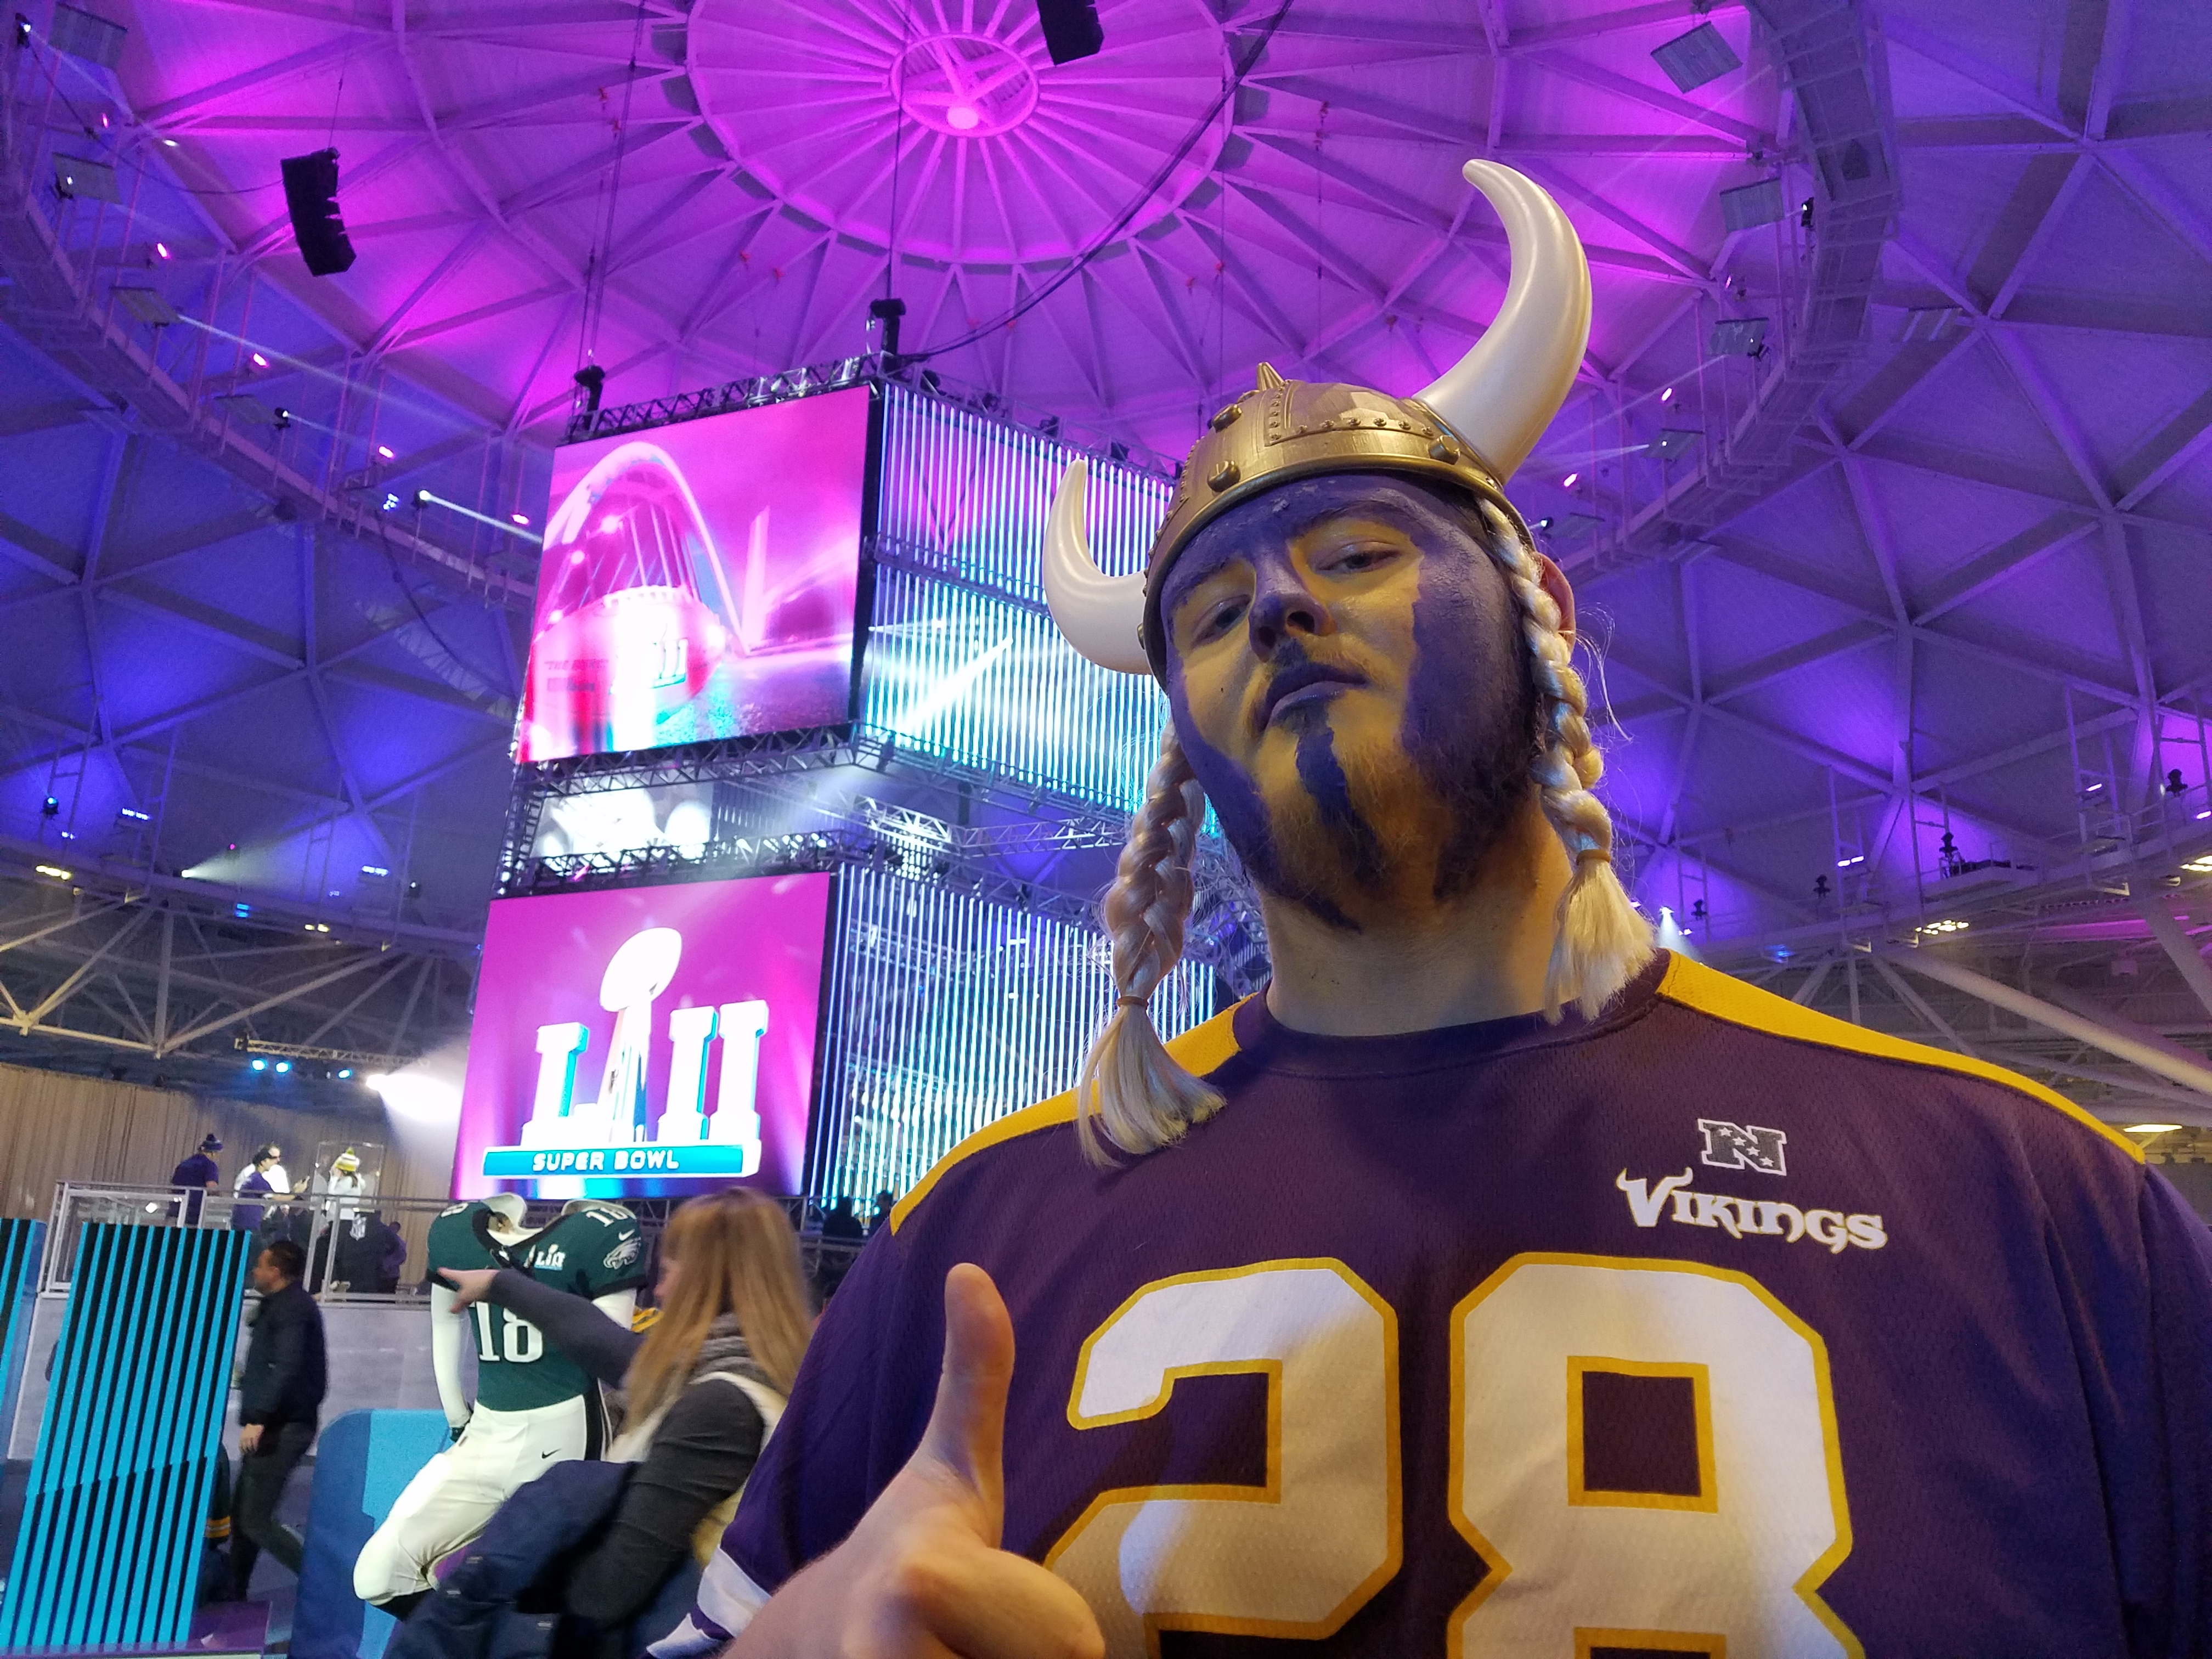 """This year's Super Bowl host city is Minneapolis, Minnesota. Their home team, the Vikings, came within one win of playing in the big game. That's still a fresh wound for Vikings fans like Drake Jackson: """"My heart aches a little bit once I see Pa..."""